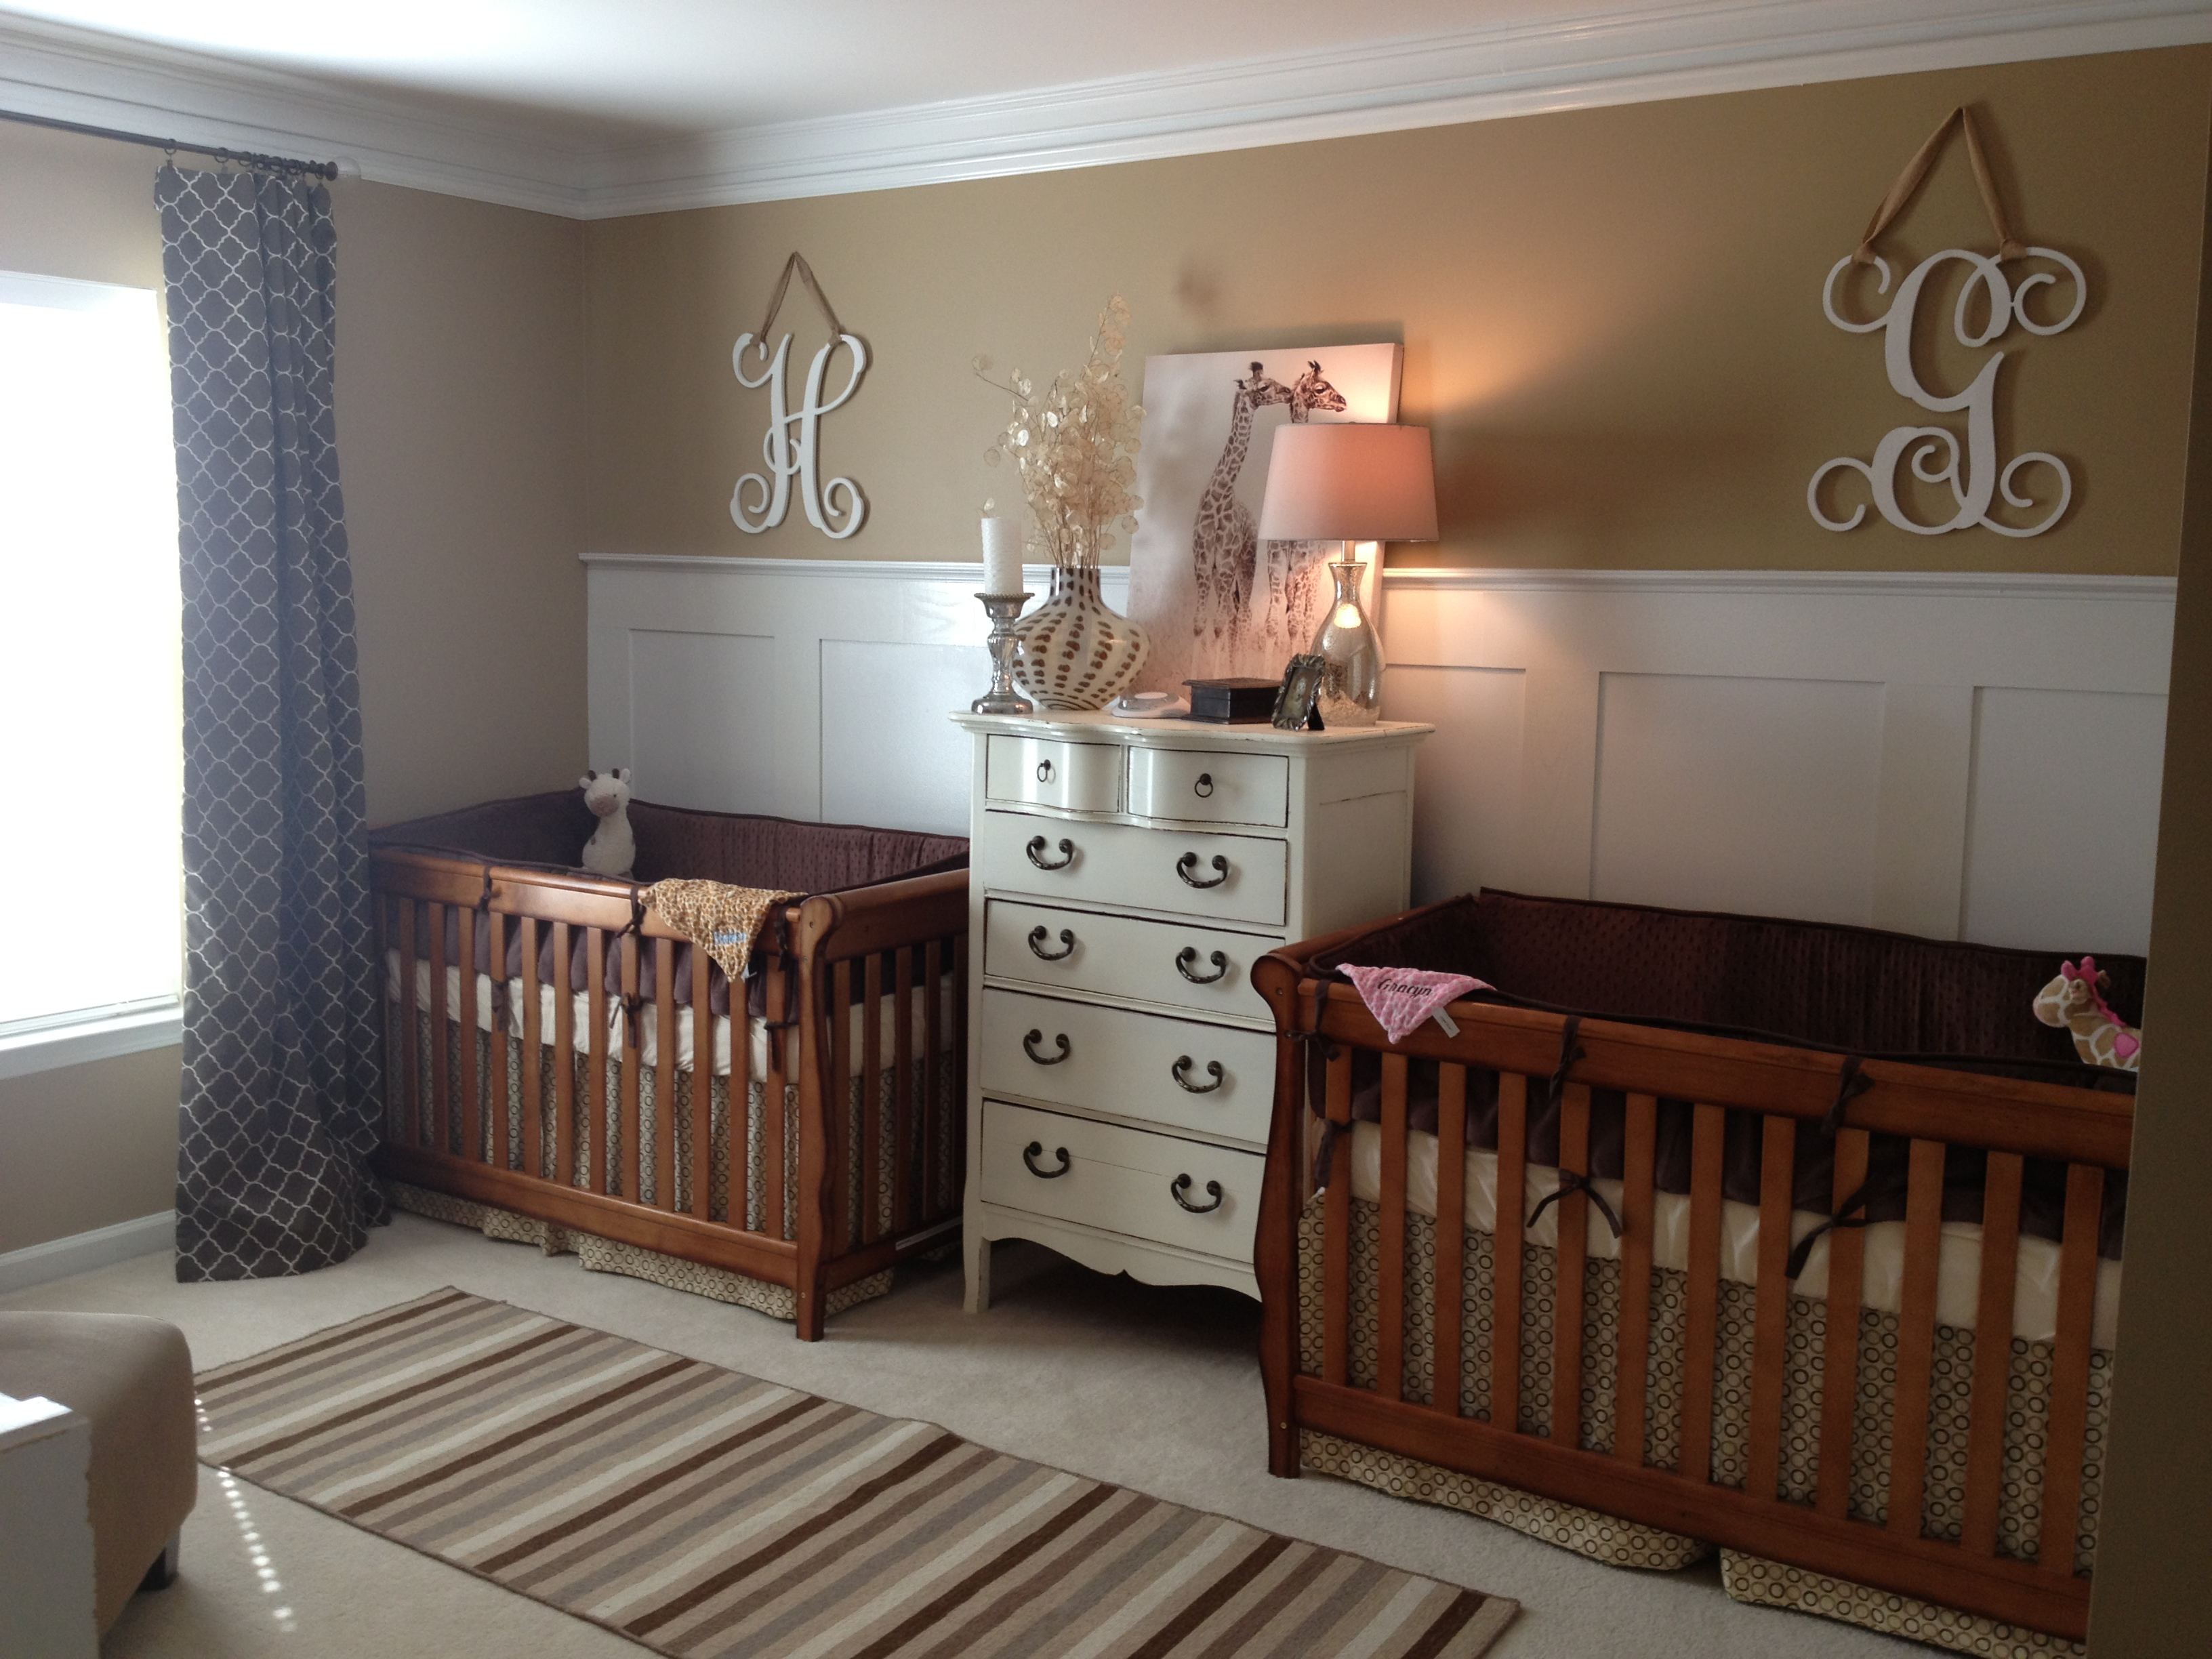 Astonishing traditional and personalized nursery